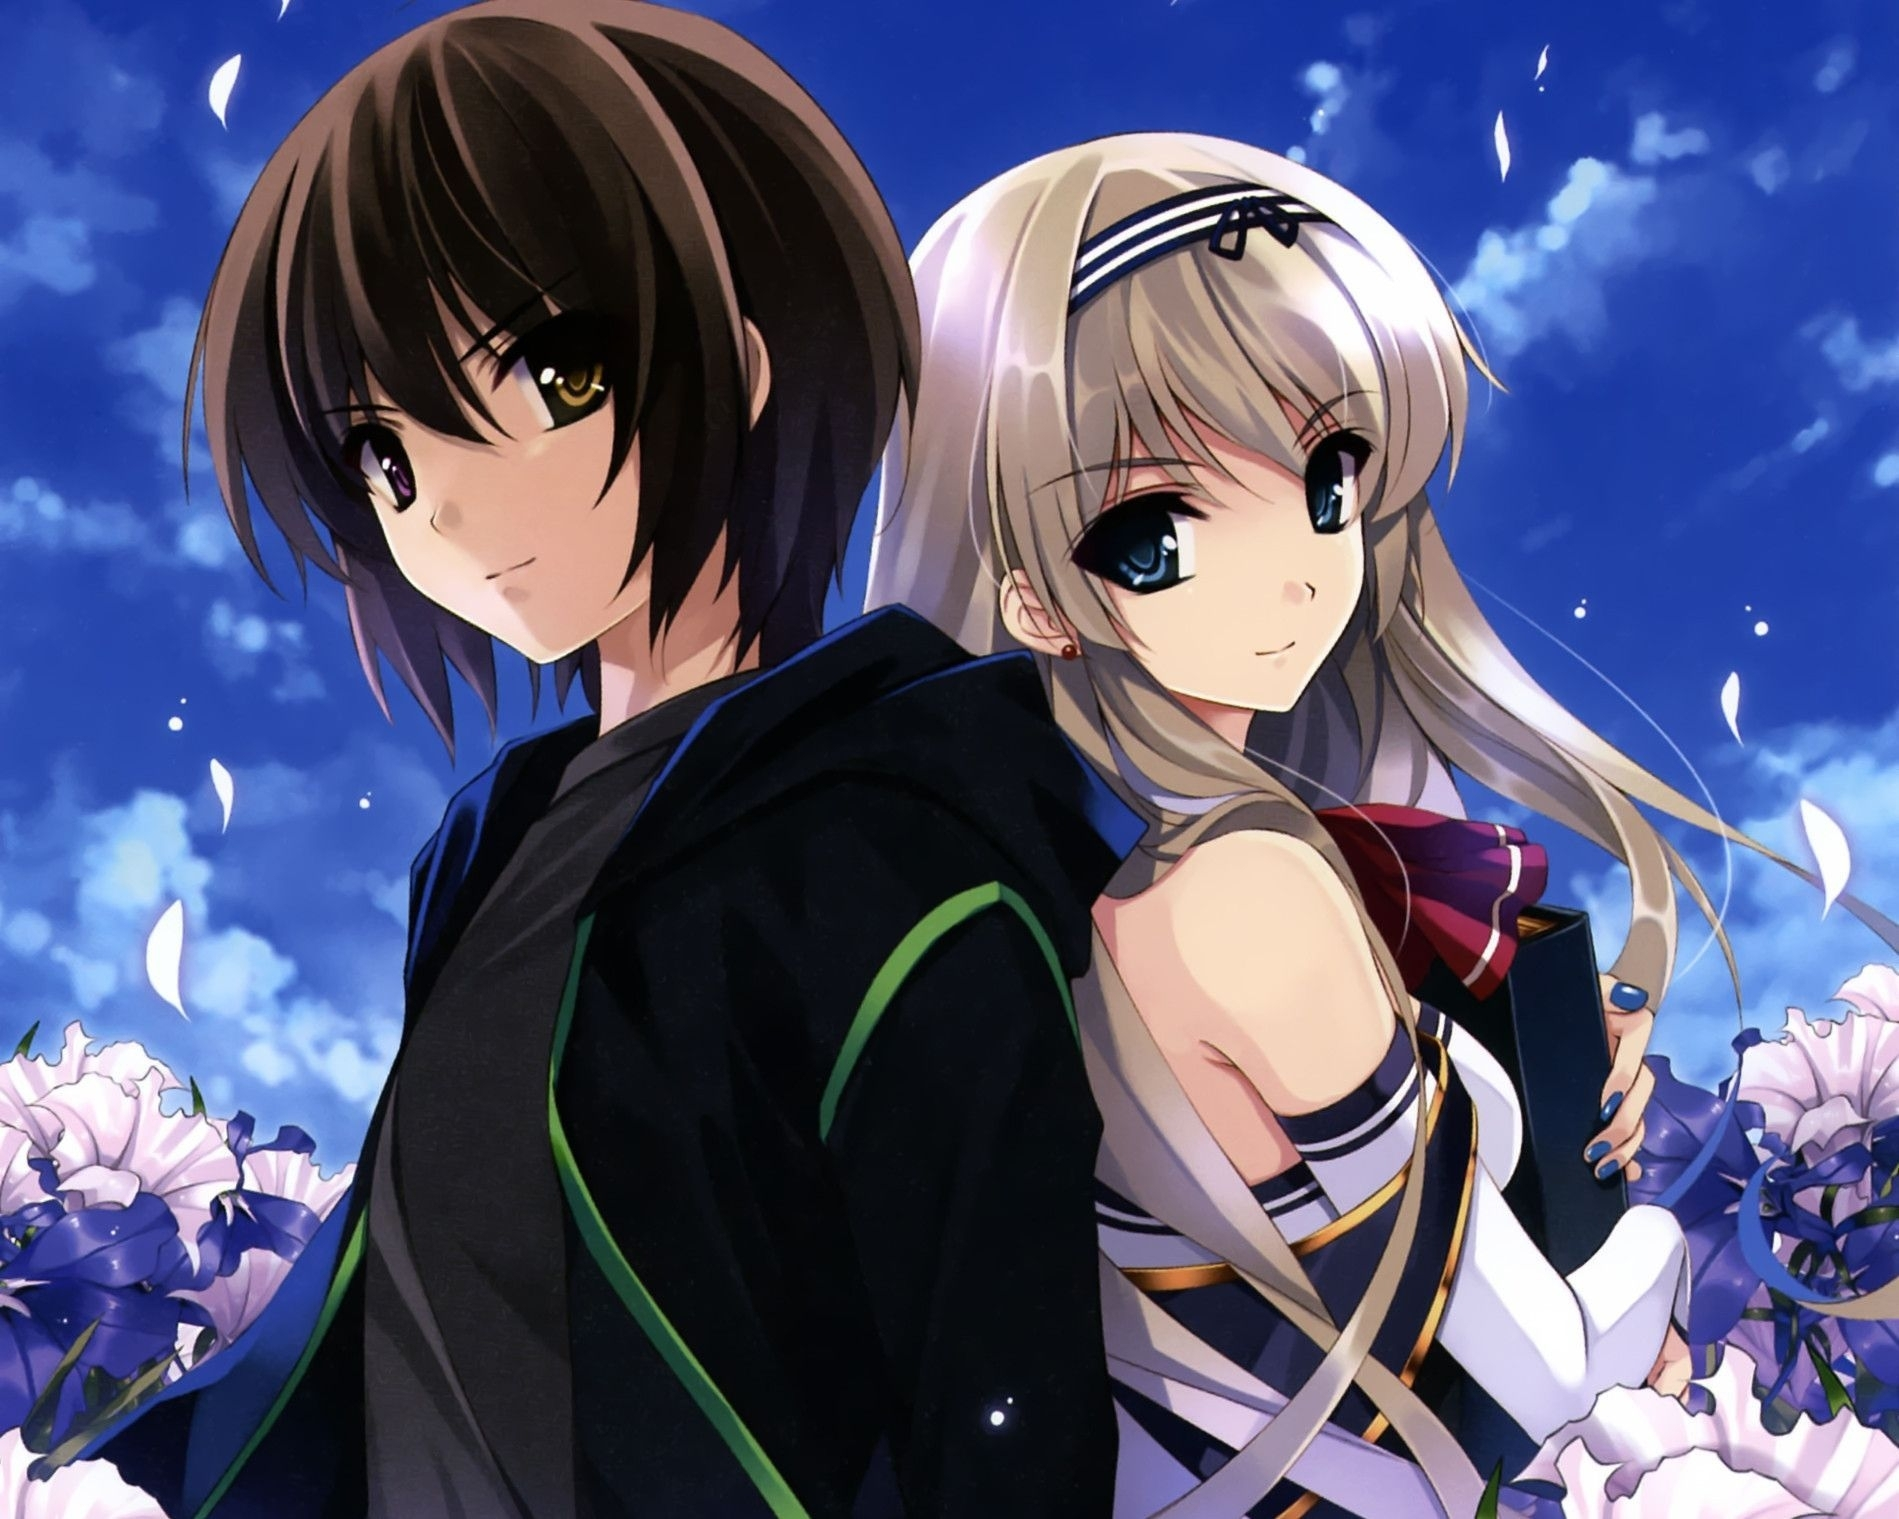 wallpapers for > cute anime couples wallpaper desktop | anime